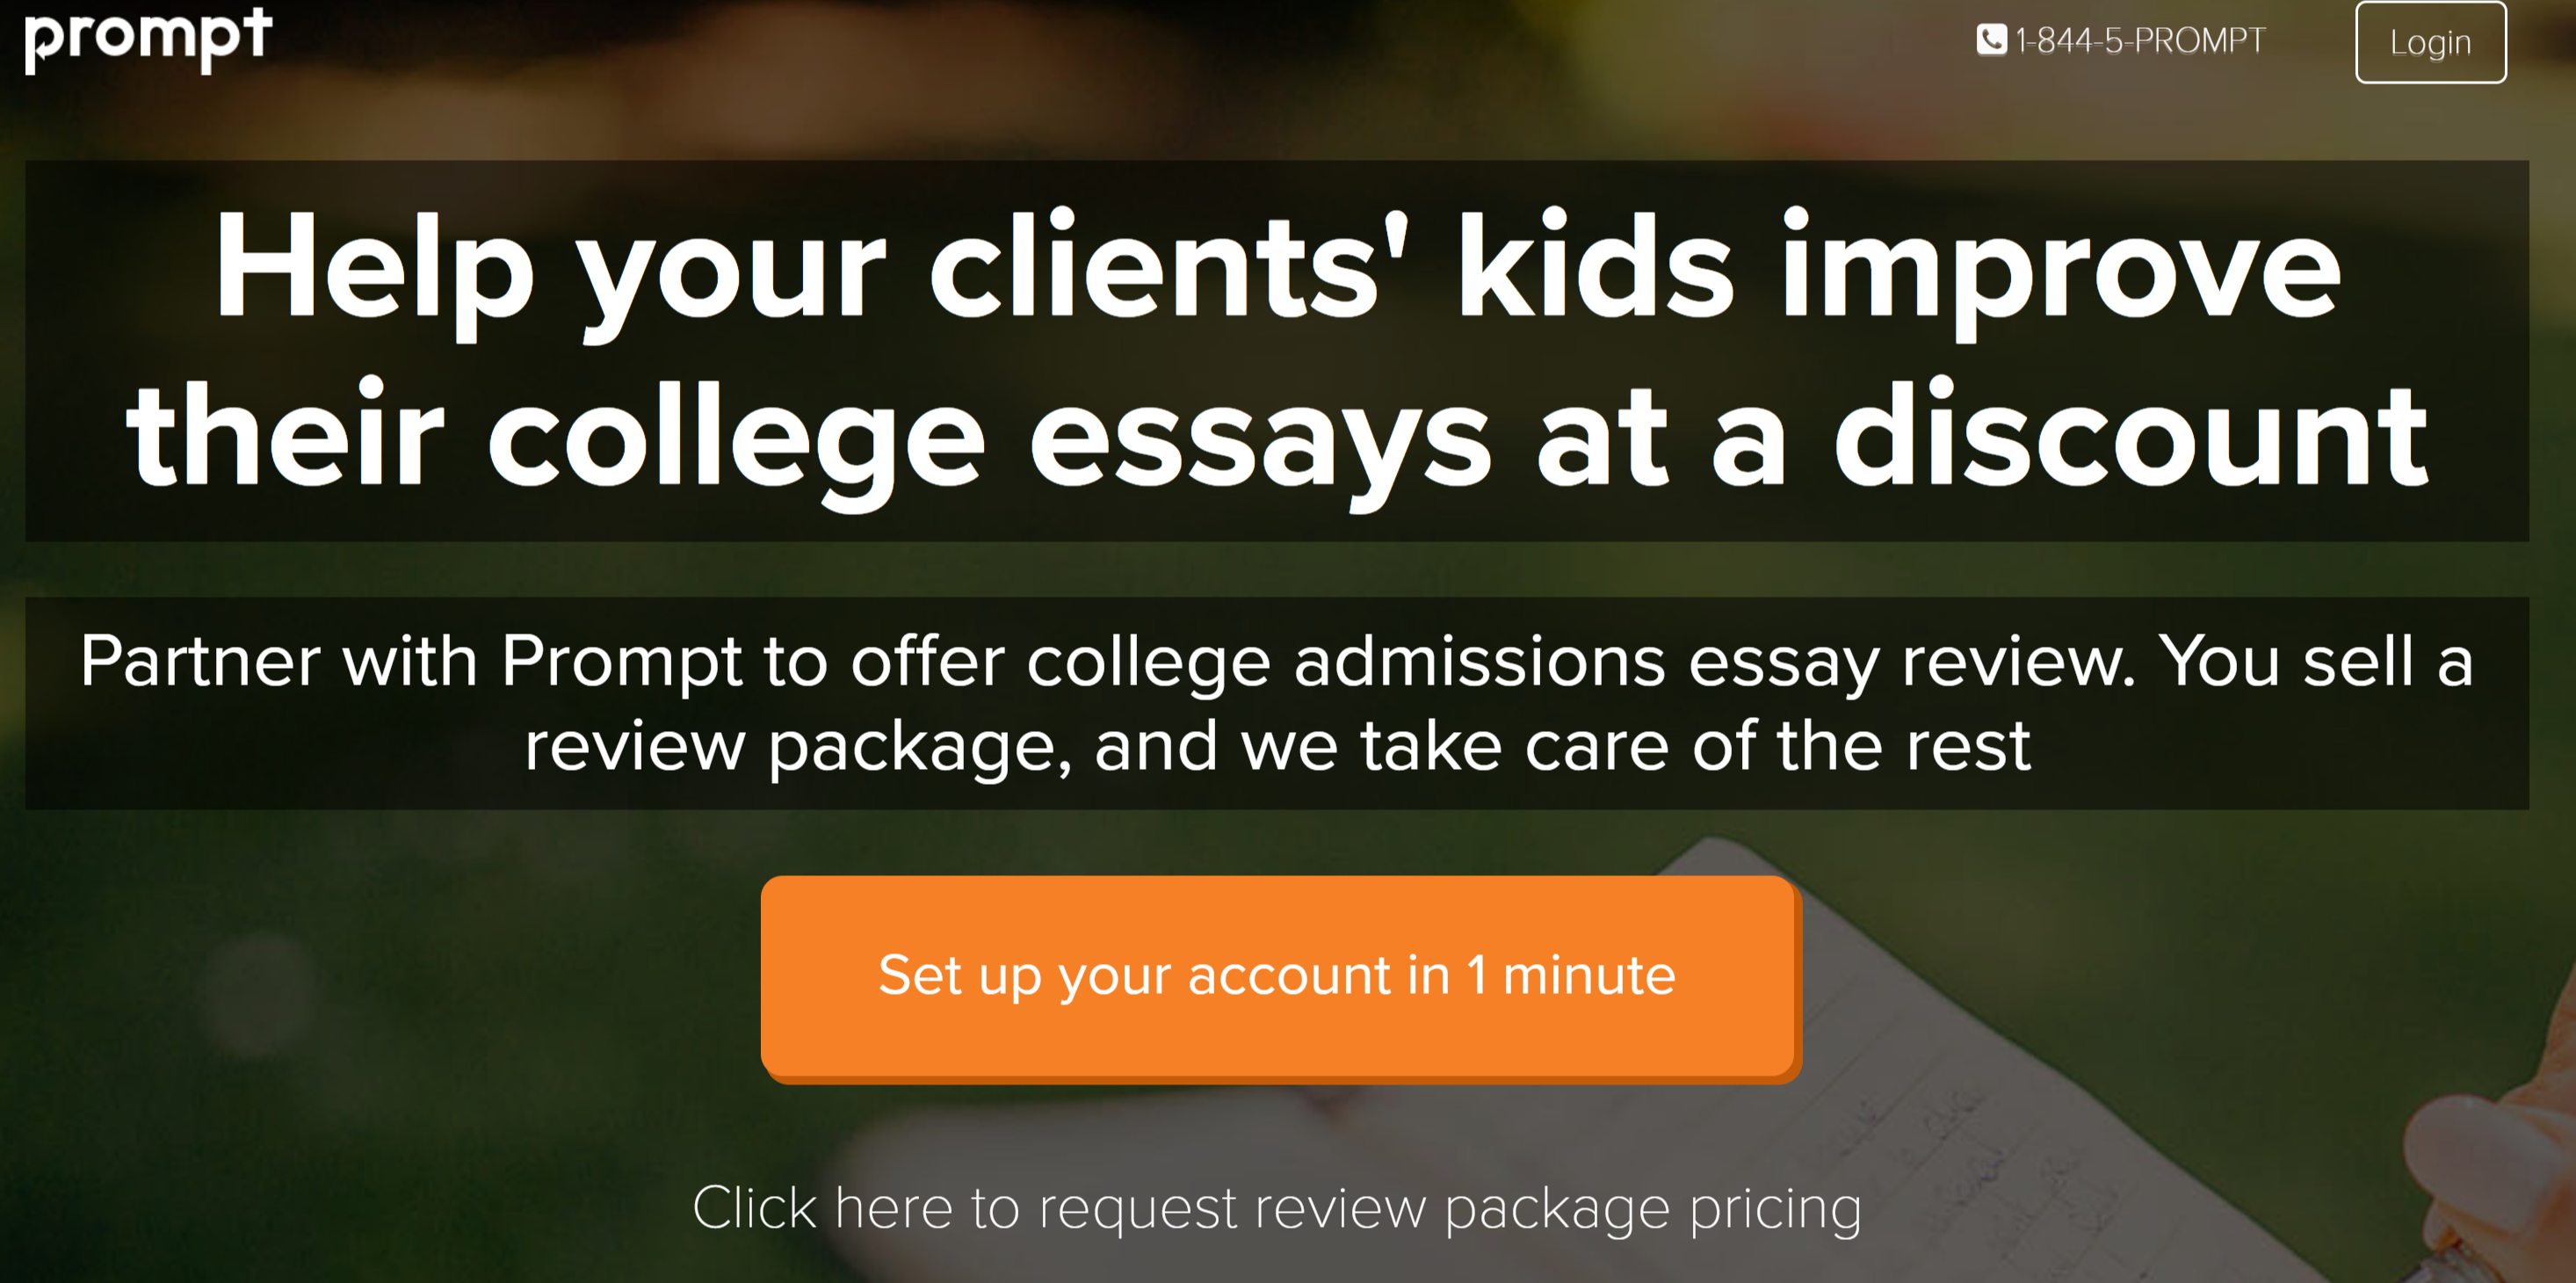 WE'VE TEAMED UP WITH PROMPT TO HELP YOUR FAMILIES WITH COLLEGE ESSAYS